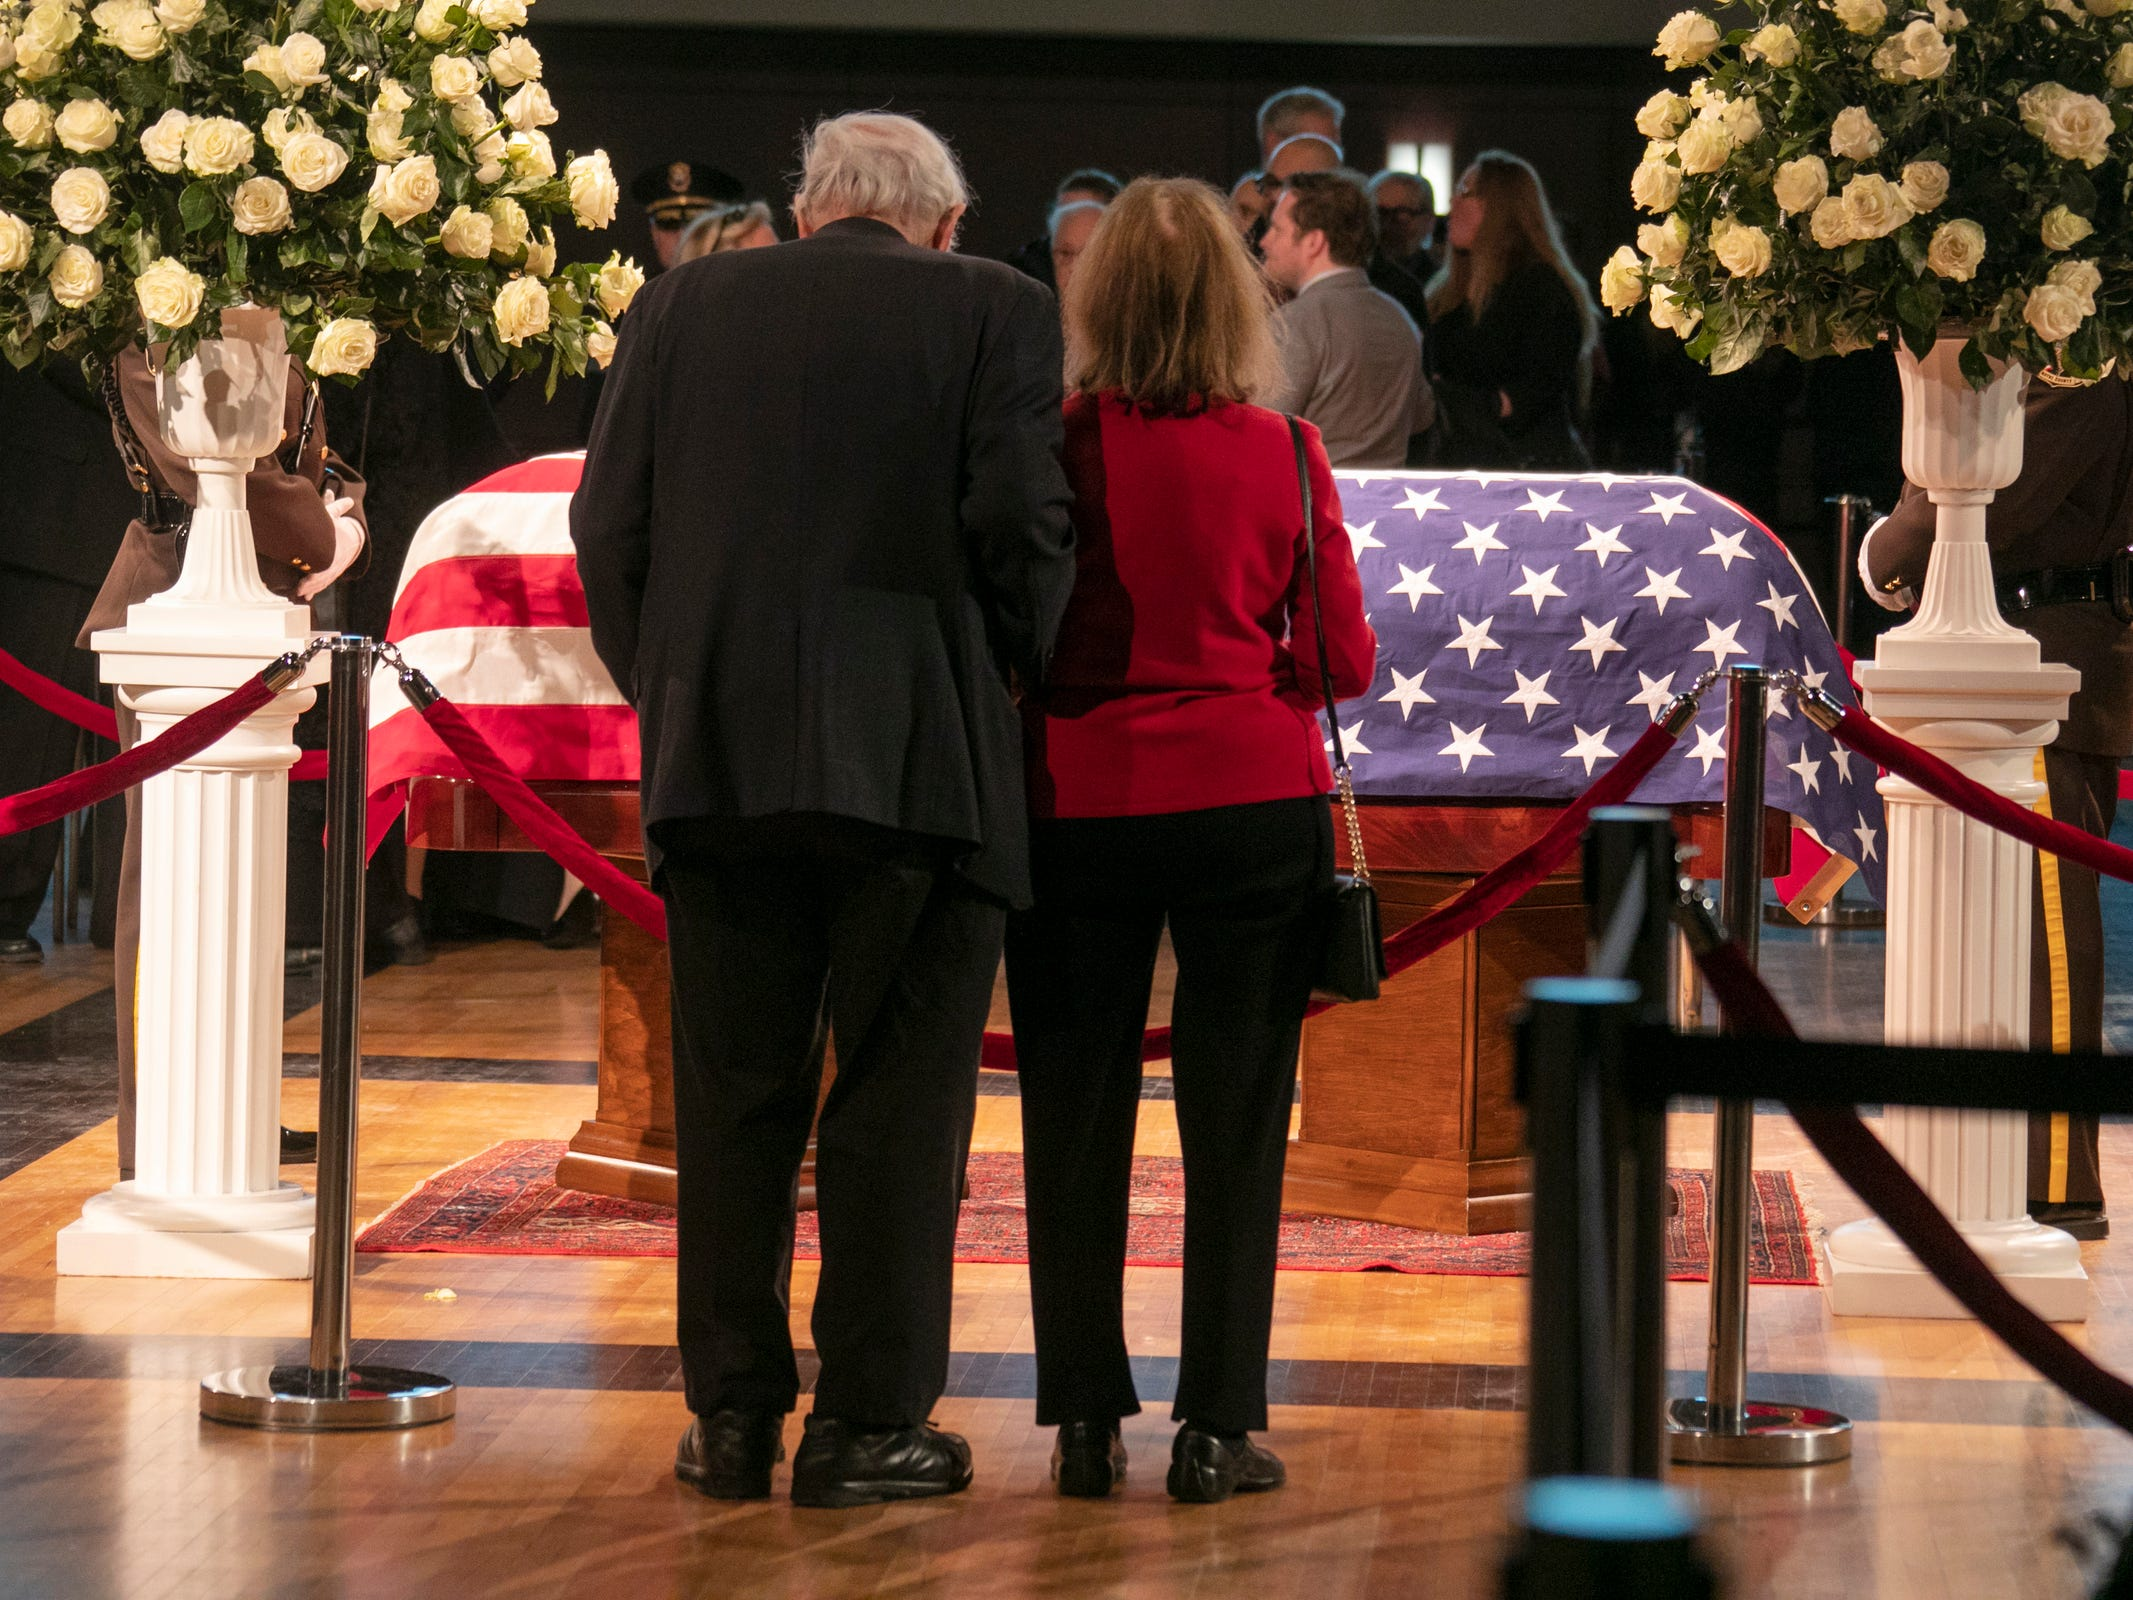 Carl Levin and his wife Barbara Halpern-Levin pay their respects to John Dingell who is lying in repose at the Michael A. Guido theater in Dearborn Monday, Feb. 11, 2019.